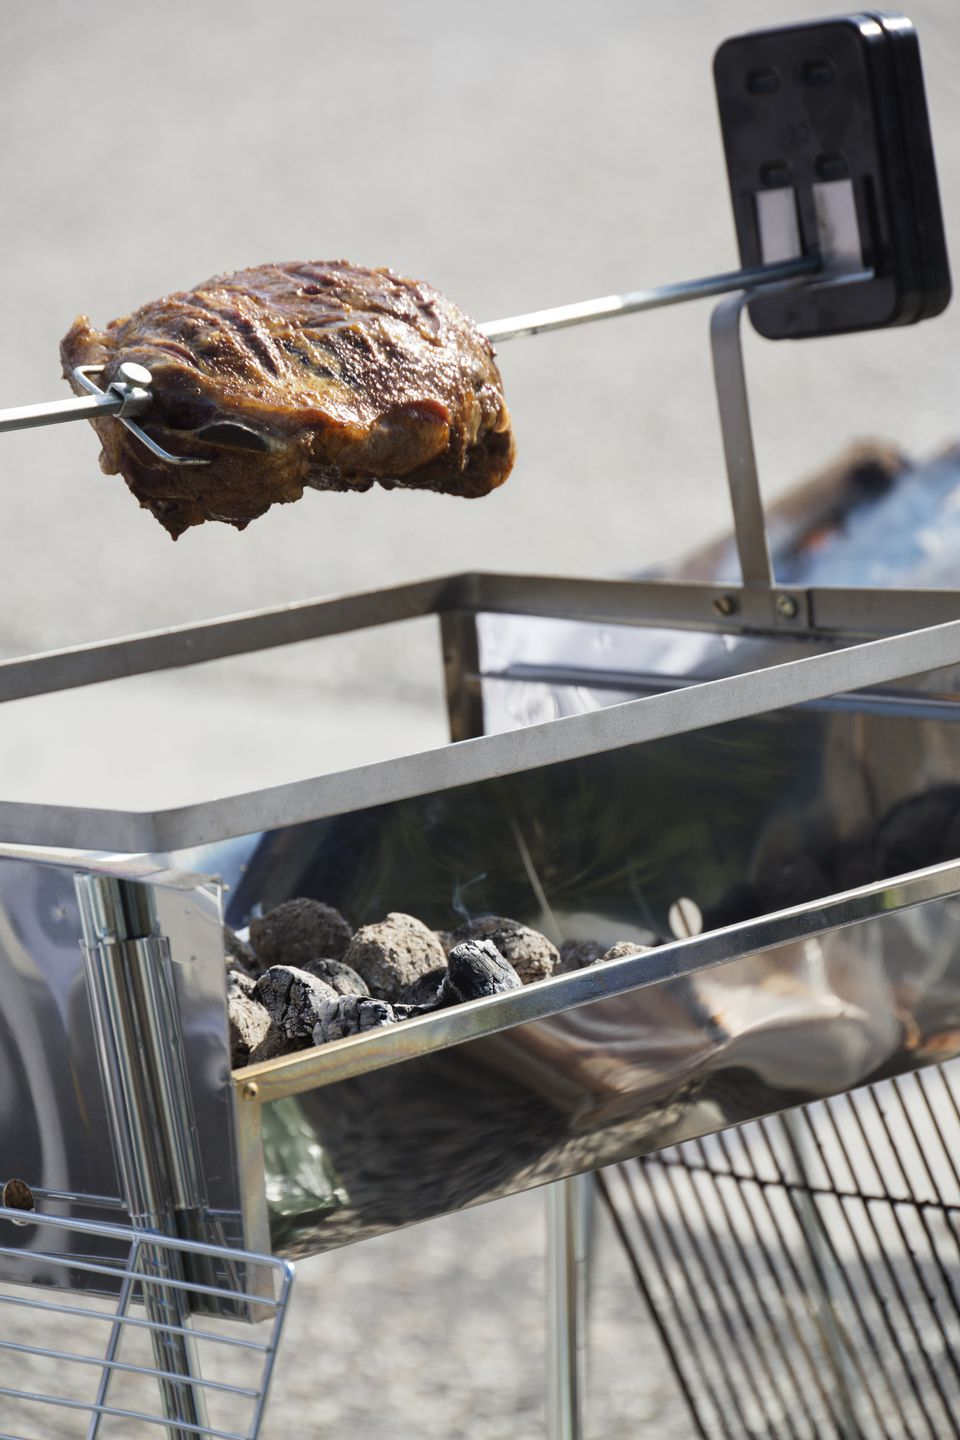 A leg of lamb on a spit